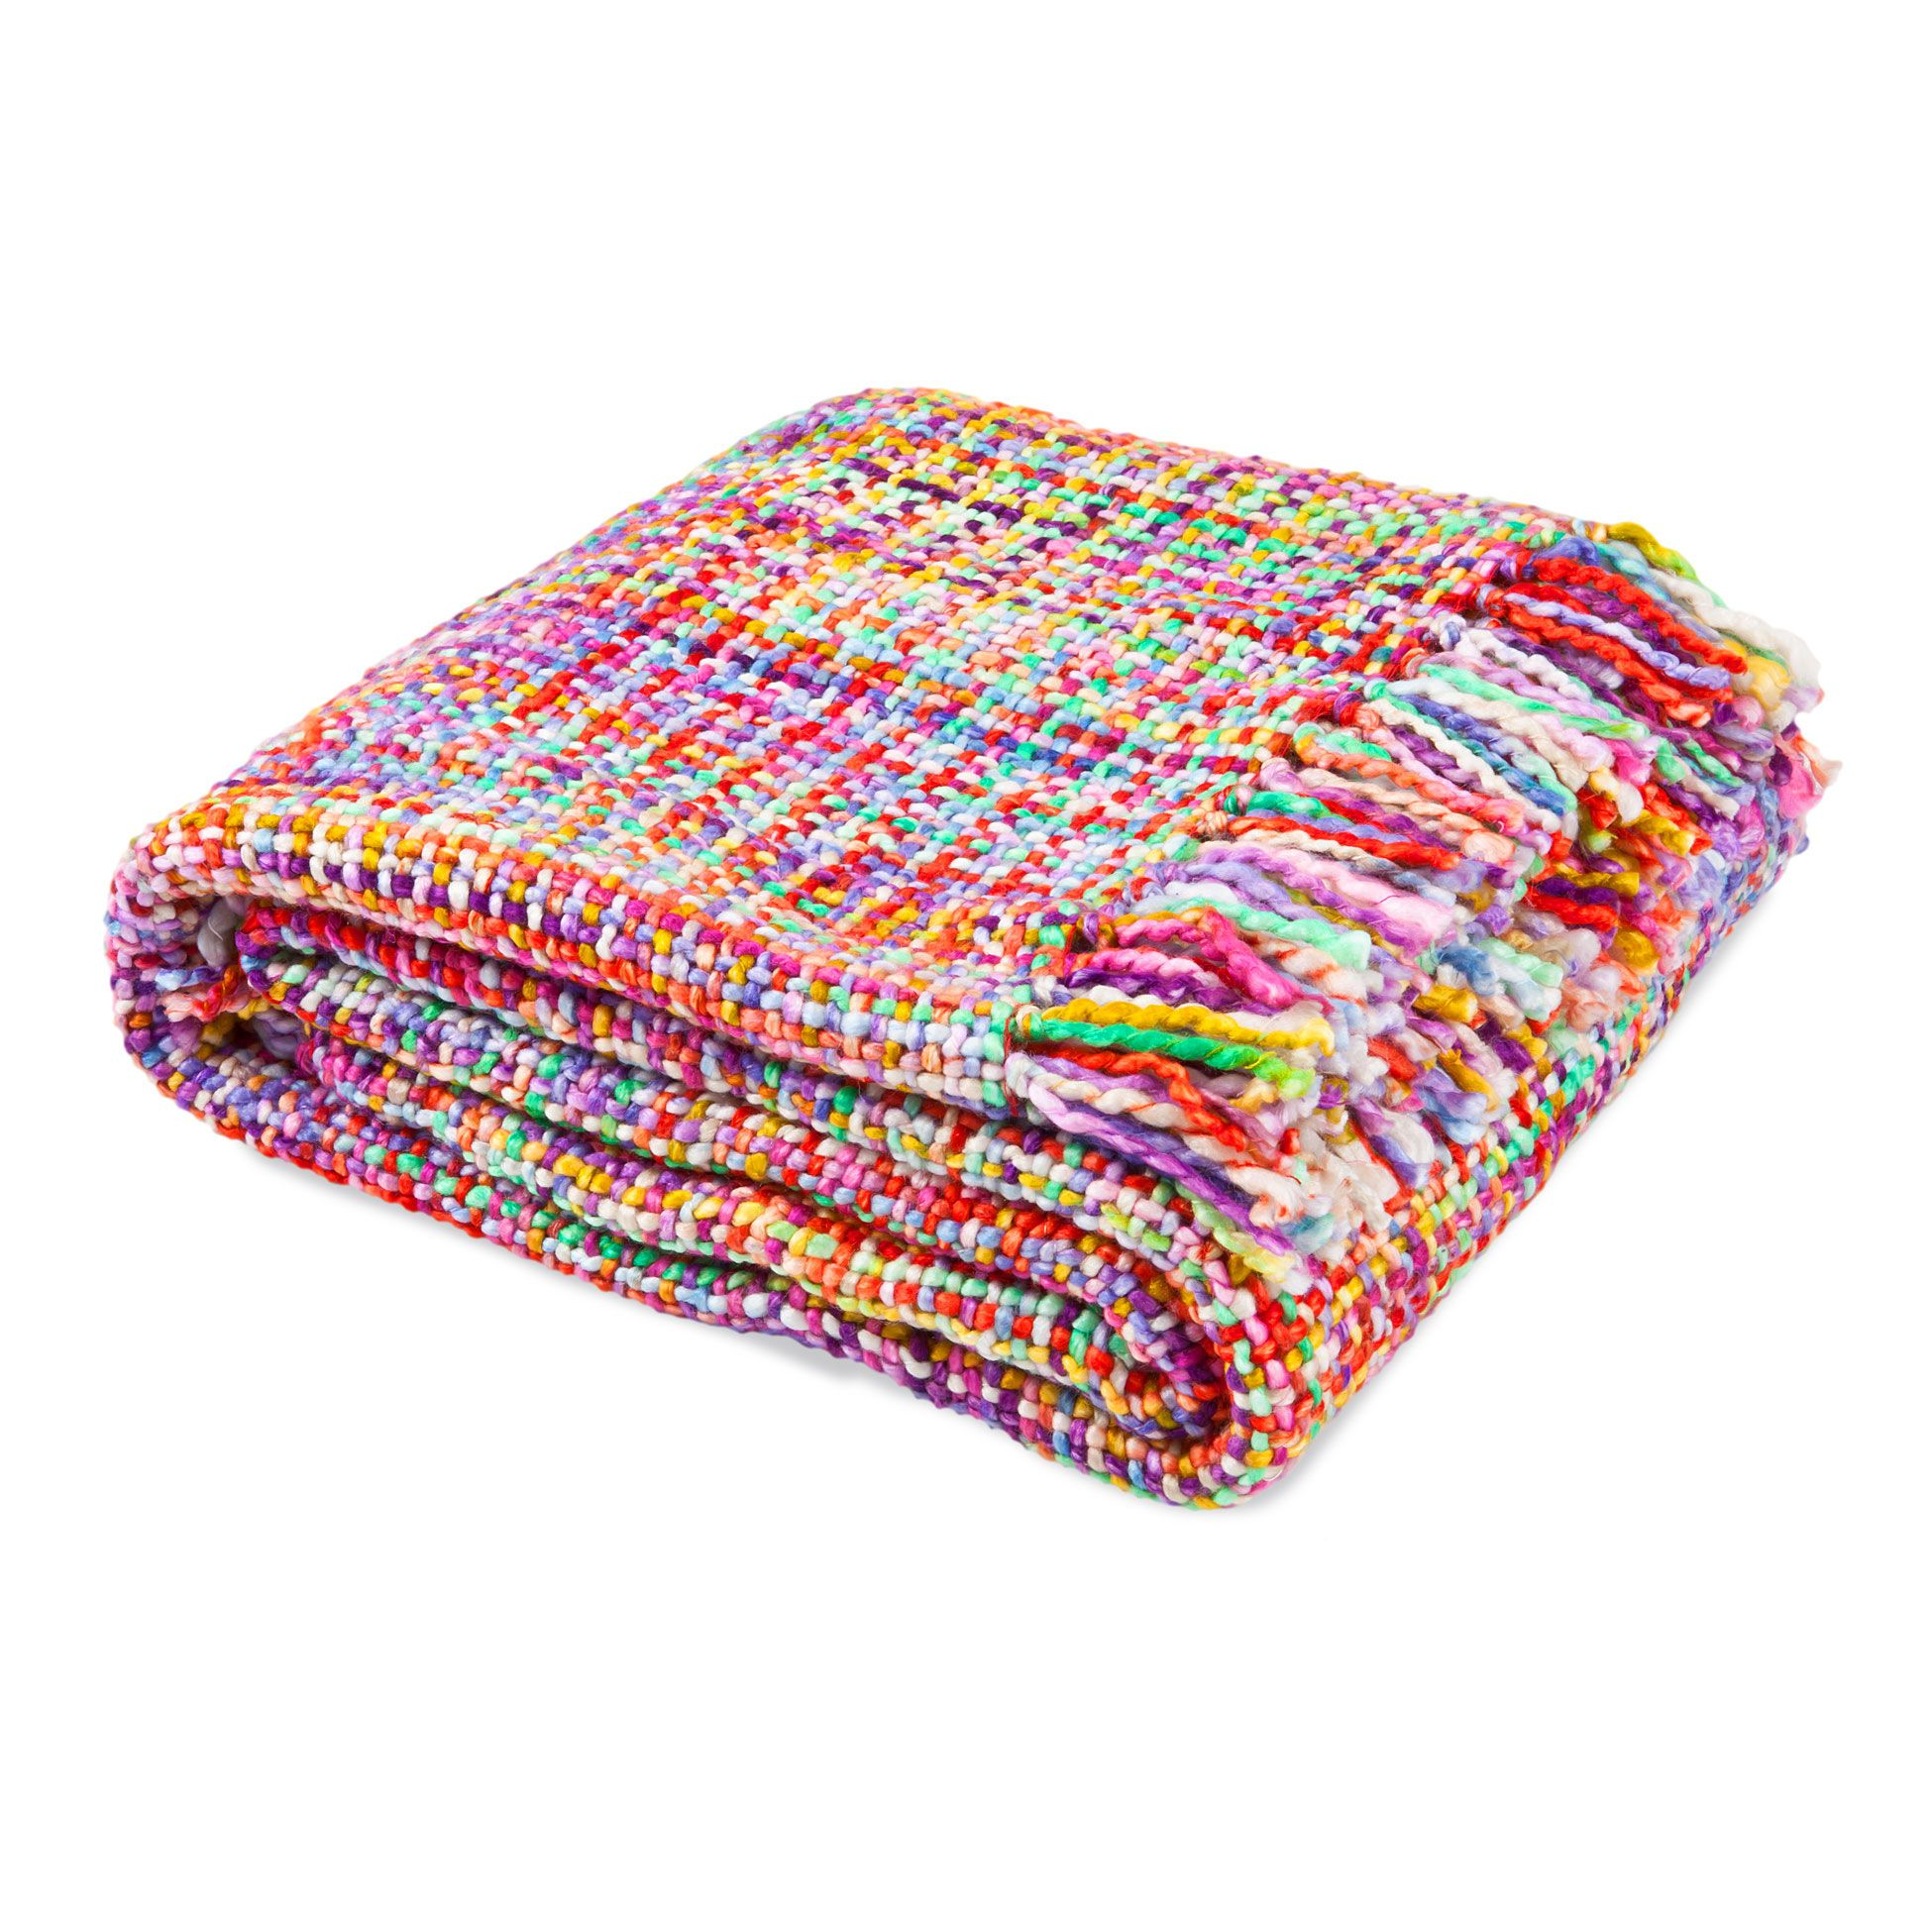 Multicolored Braided Throw  Throws  Decor - Zara Home